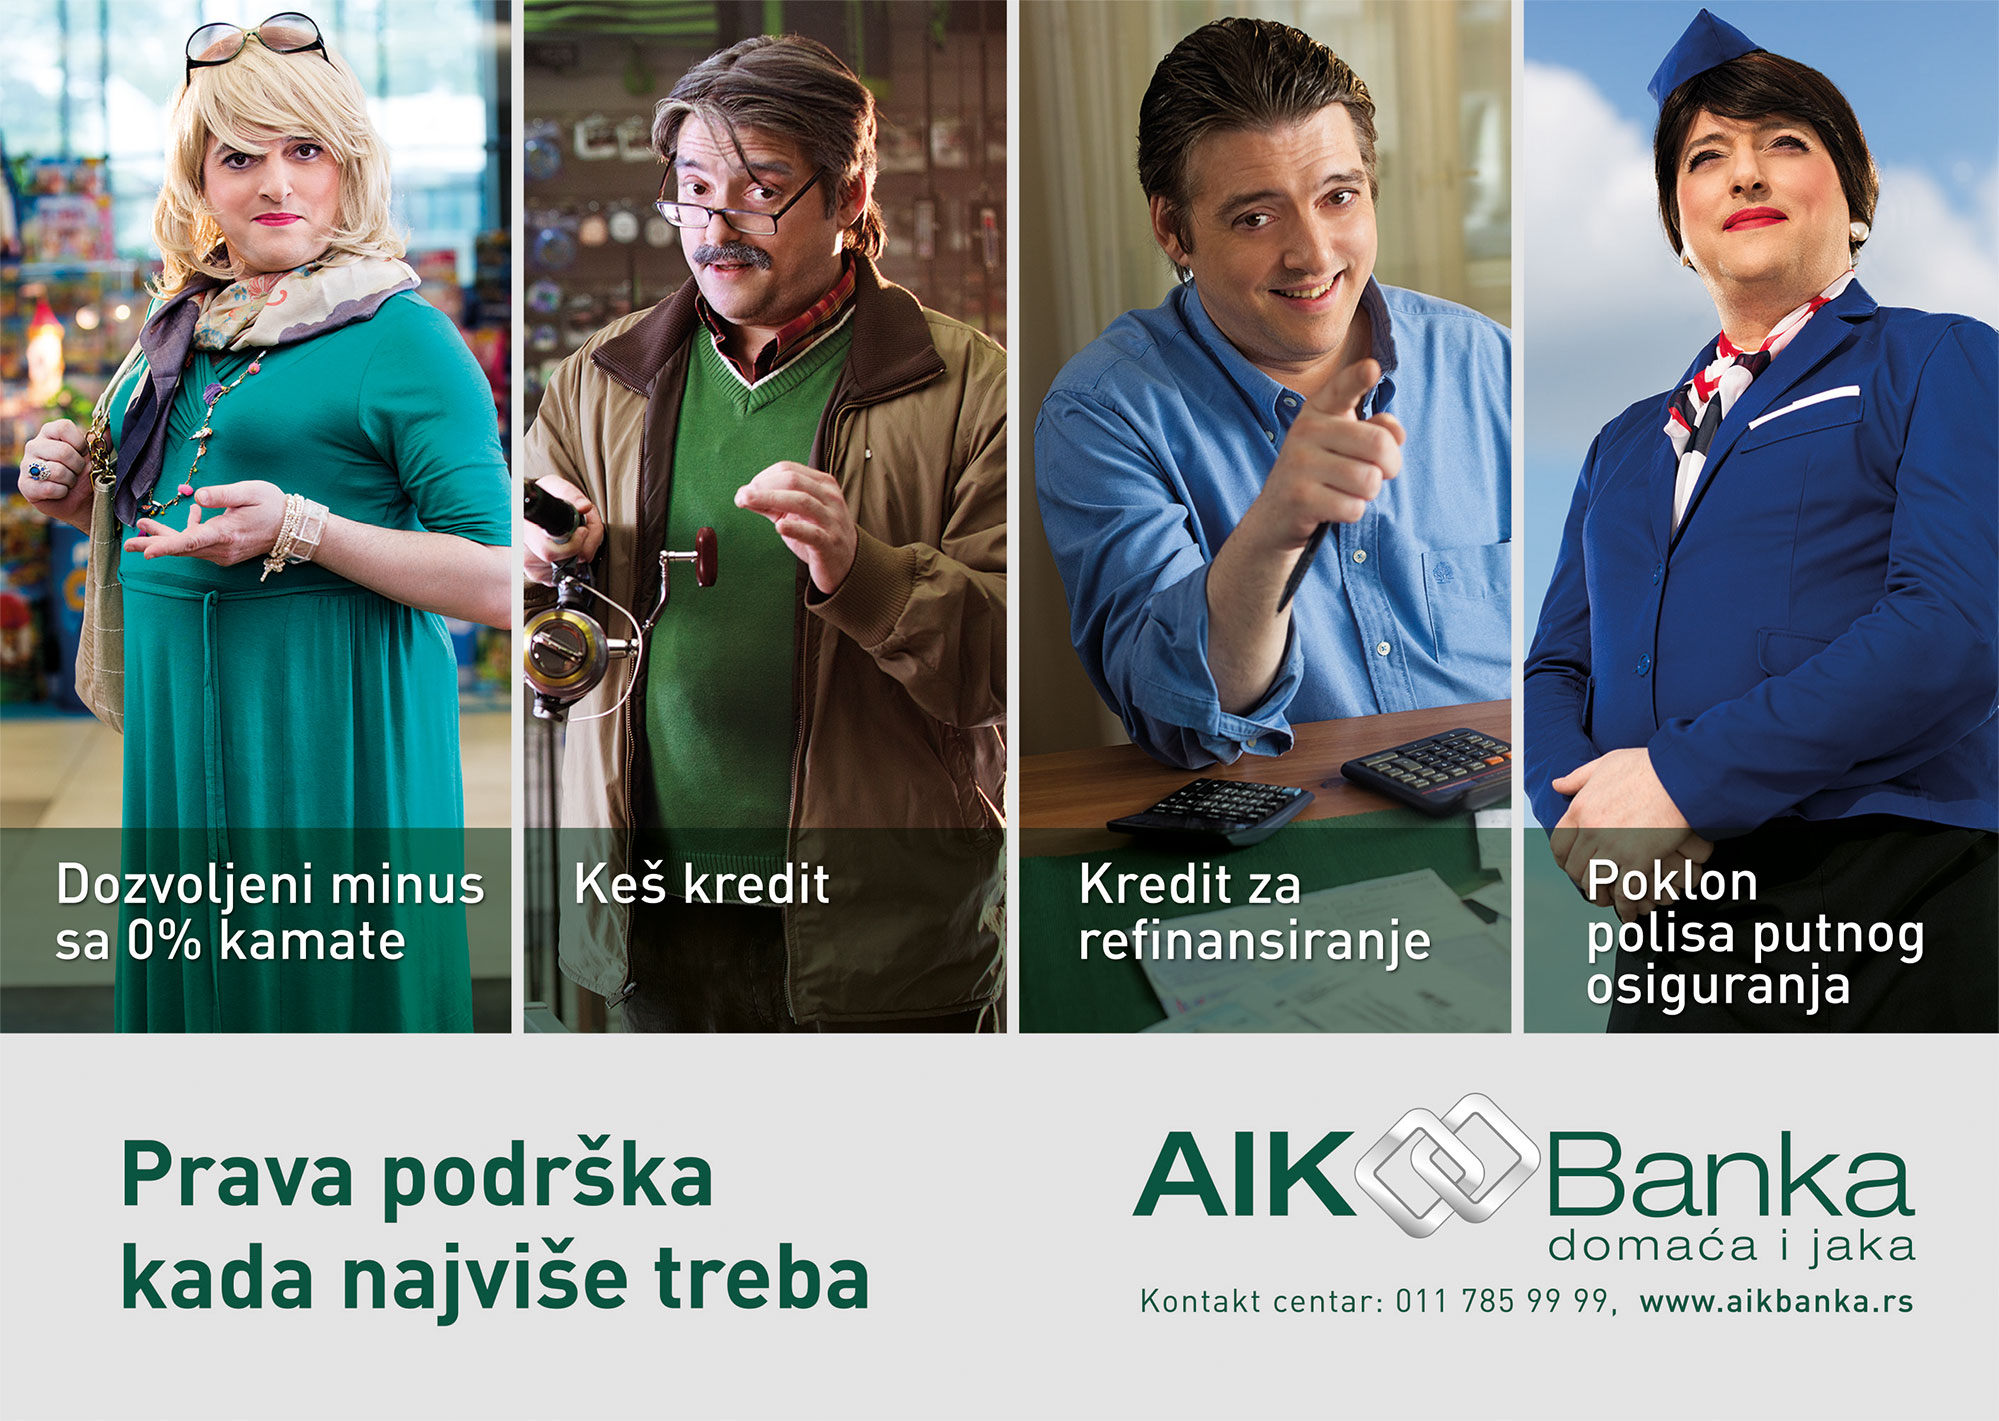 aik banka billboard 4